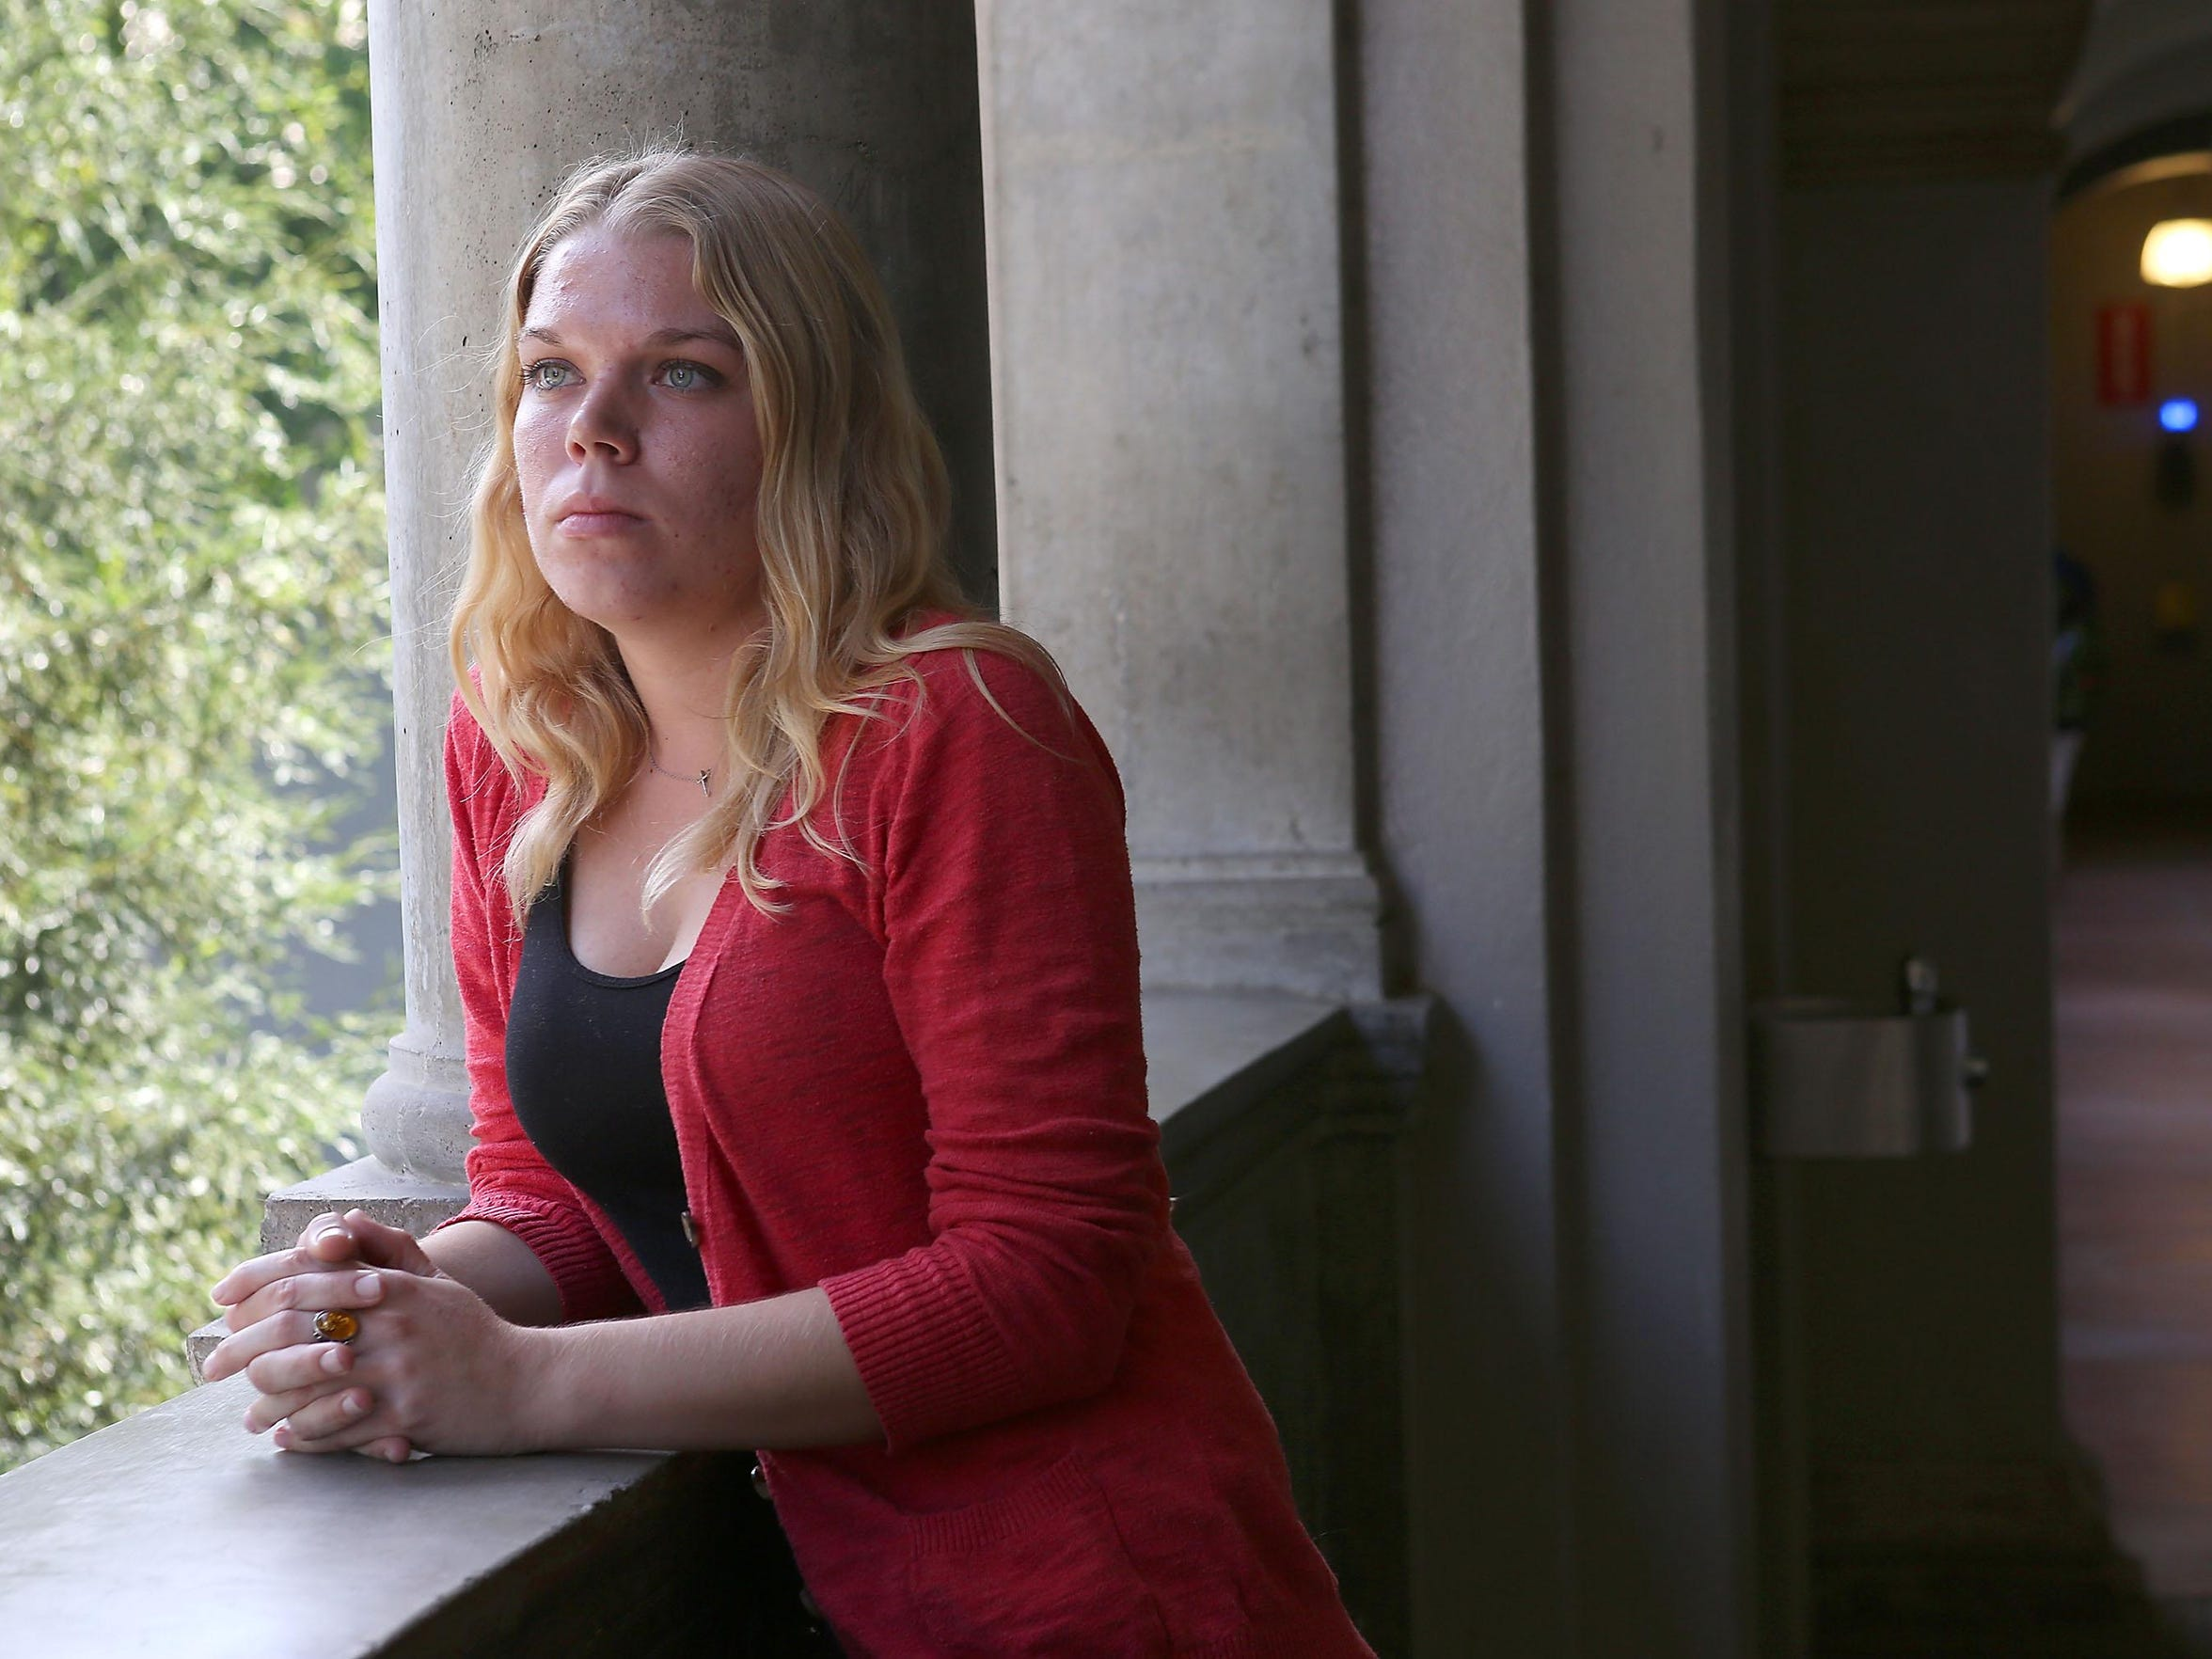 Ashley Adkins, who grew up in foster care homes, is